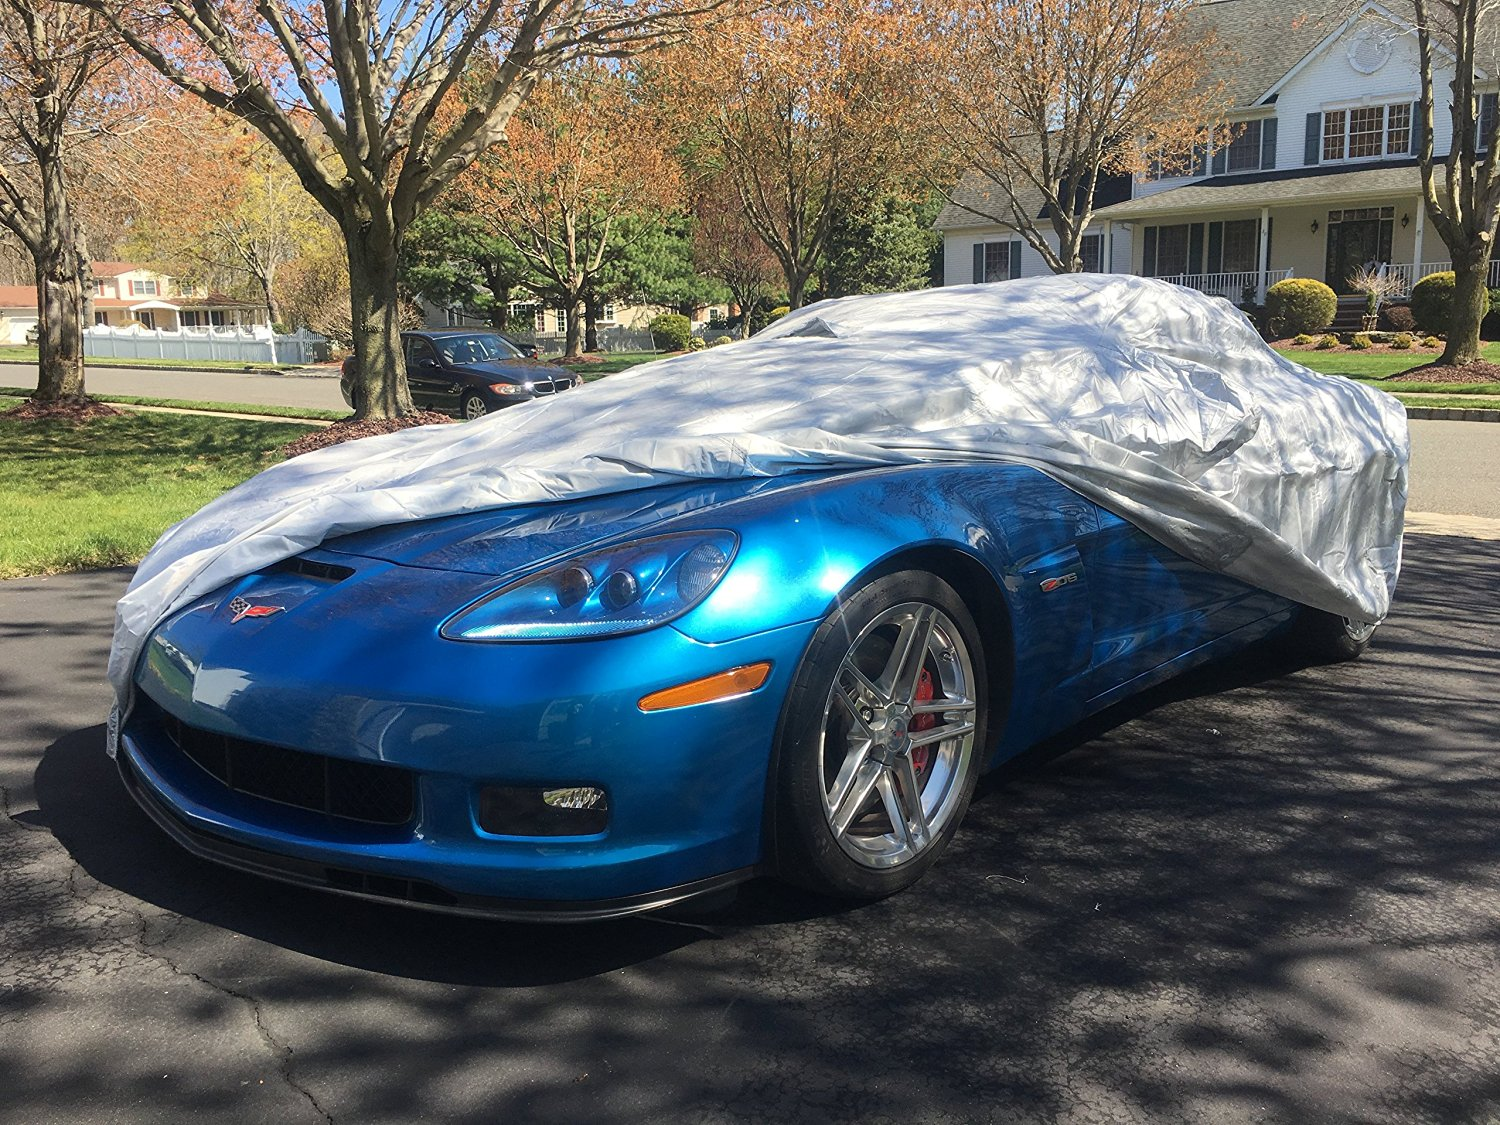 2005 - 2013 Chevrolet Corvette C6 Select-fit Microbead Car Cover Kit (Coupe,Hardtop,Convertible,427 and ZR-1)